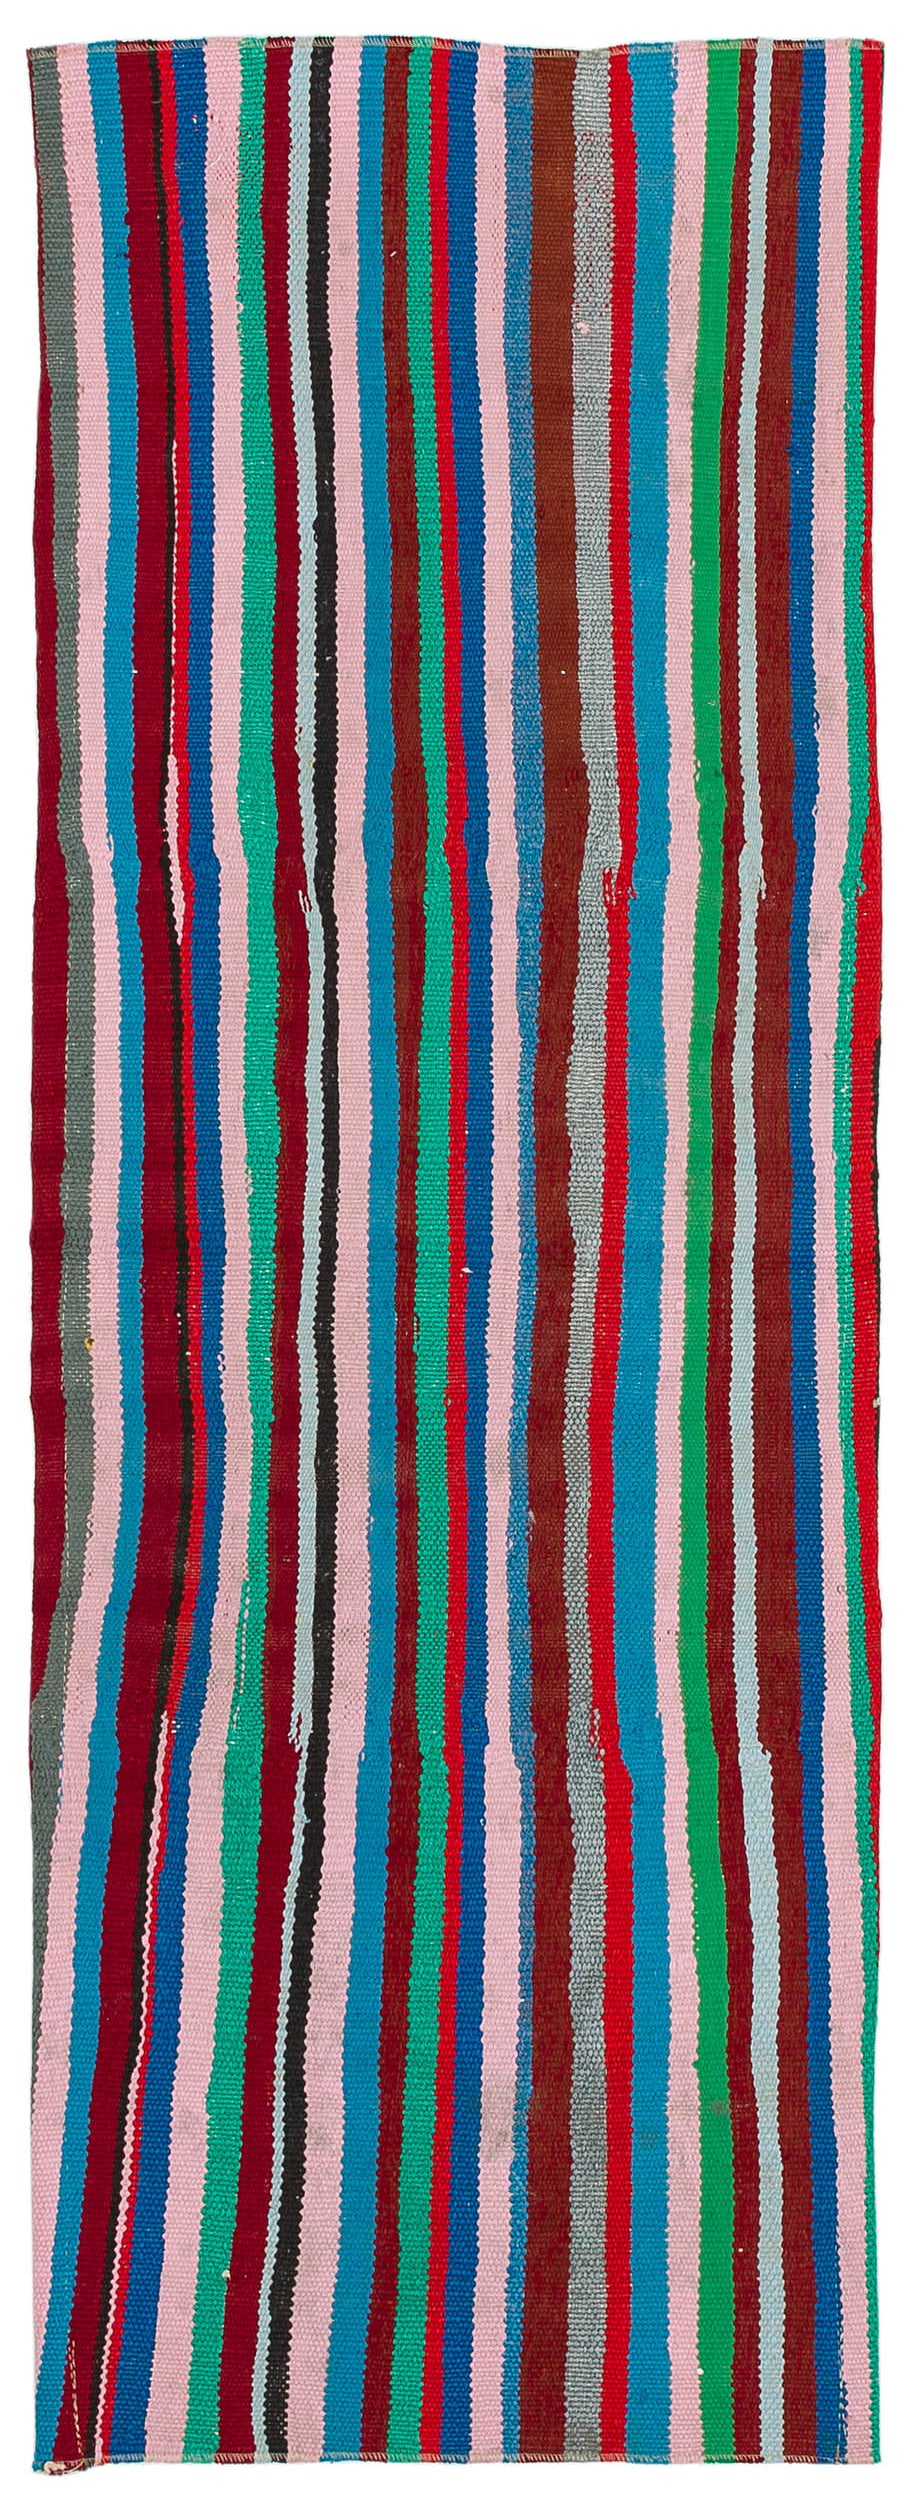 Chaput Over Dyed Kilim Rug 1'10'' x 5'1'' ft 55 x 154 cm